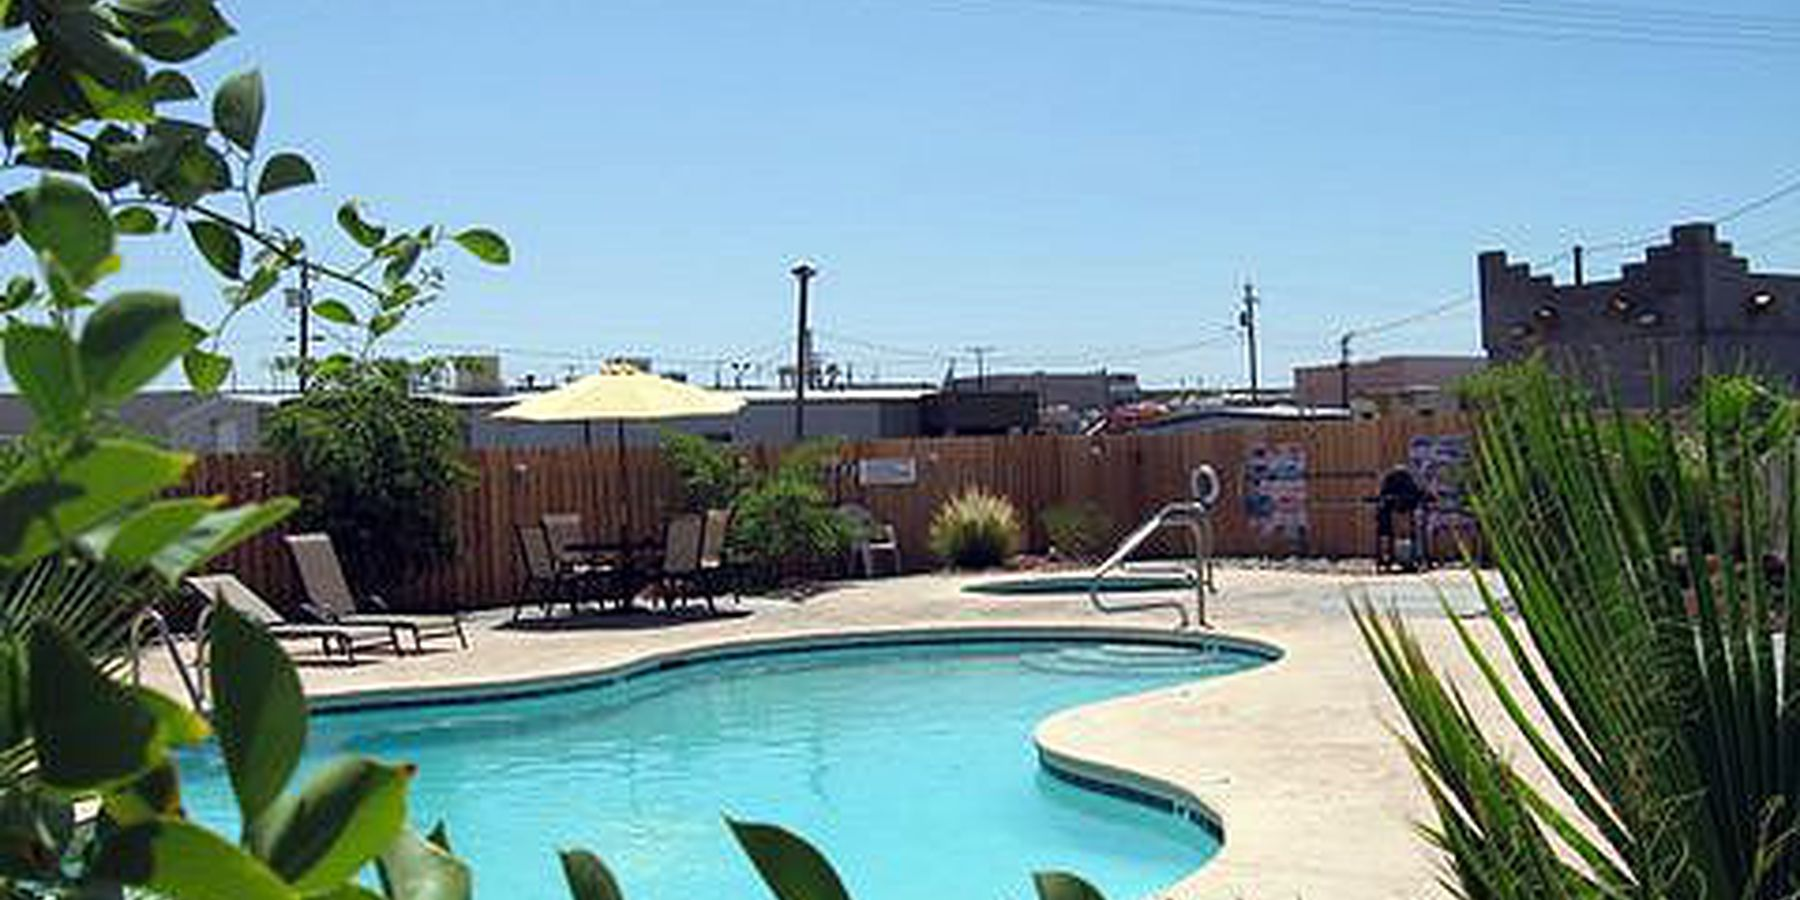 Campbell Cove RV resort pool